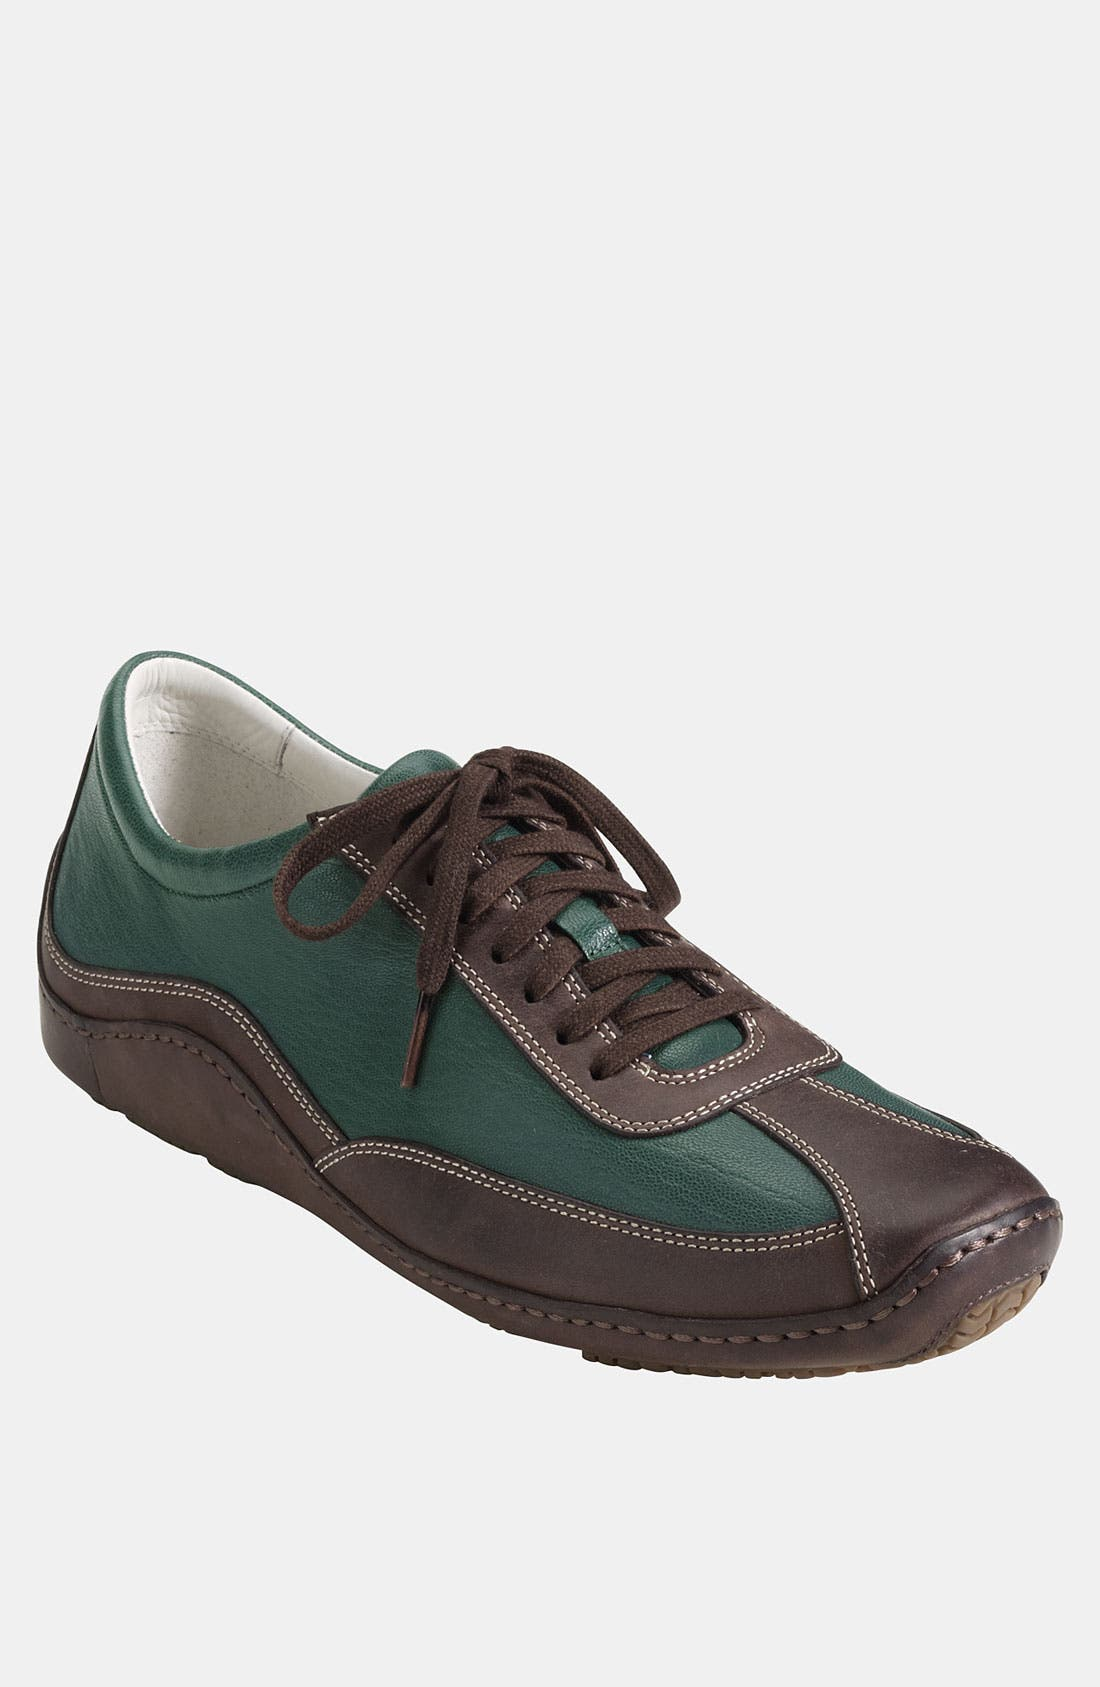 Alternate Image 1 Selected - Cole Haan 'Air Ryder' Driver Oxford